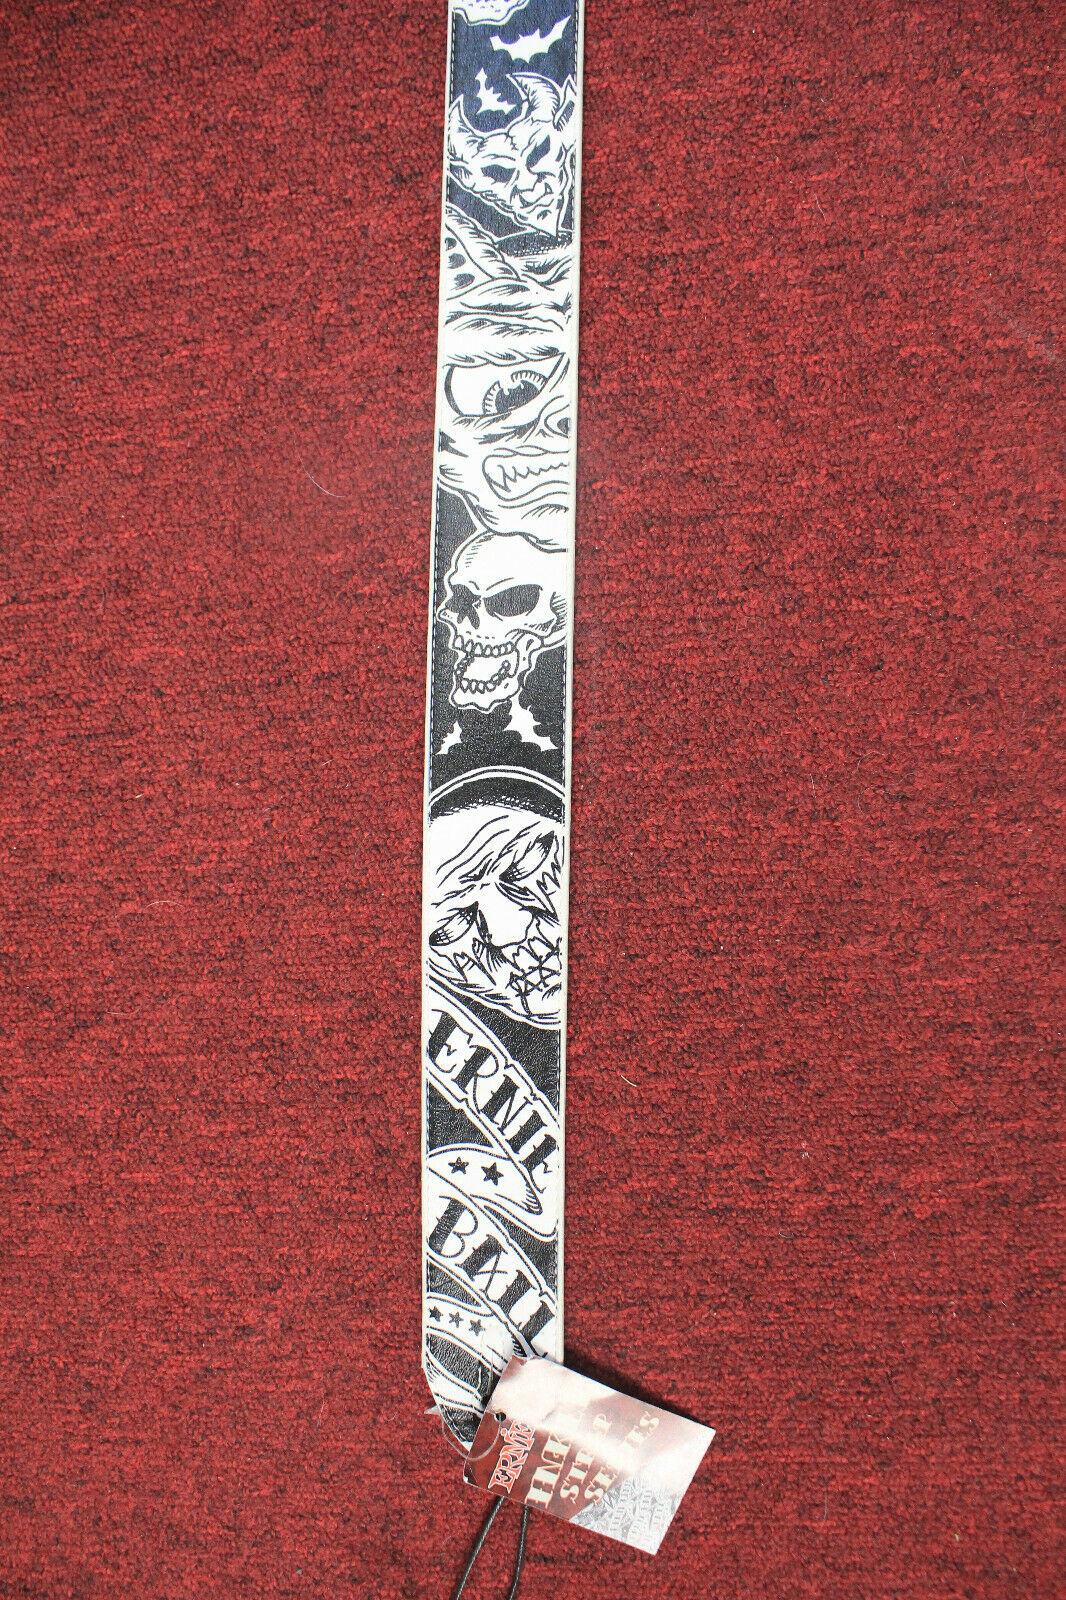 ERNIE BALL LEATHER GUITAR STRAP INKED SERIES SKULLS DESIGN -